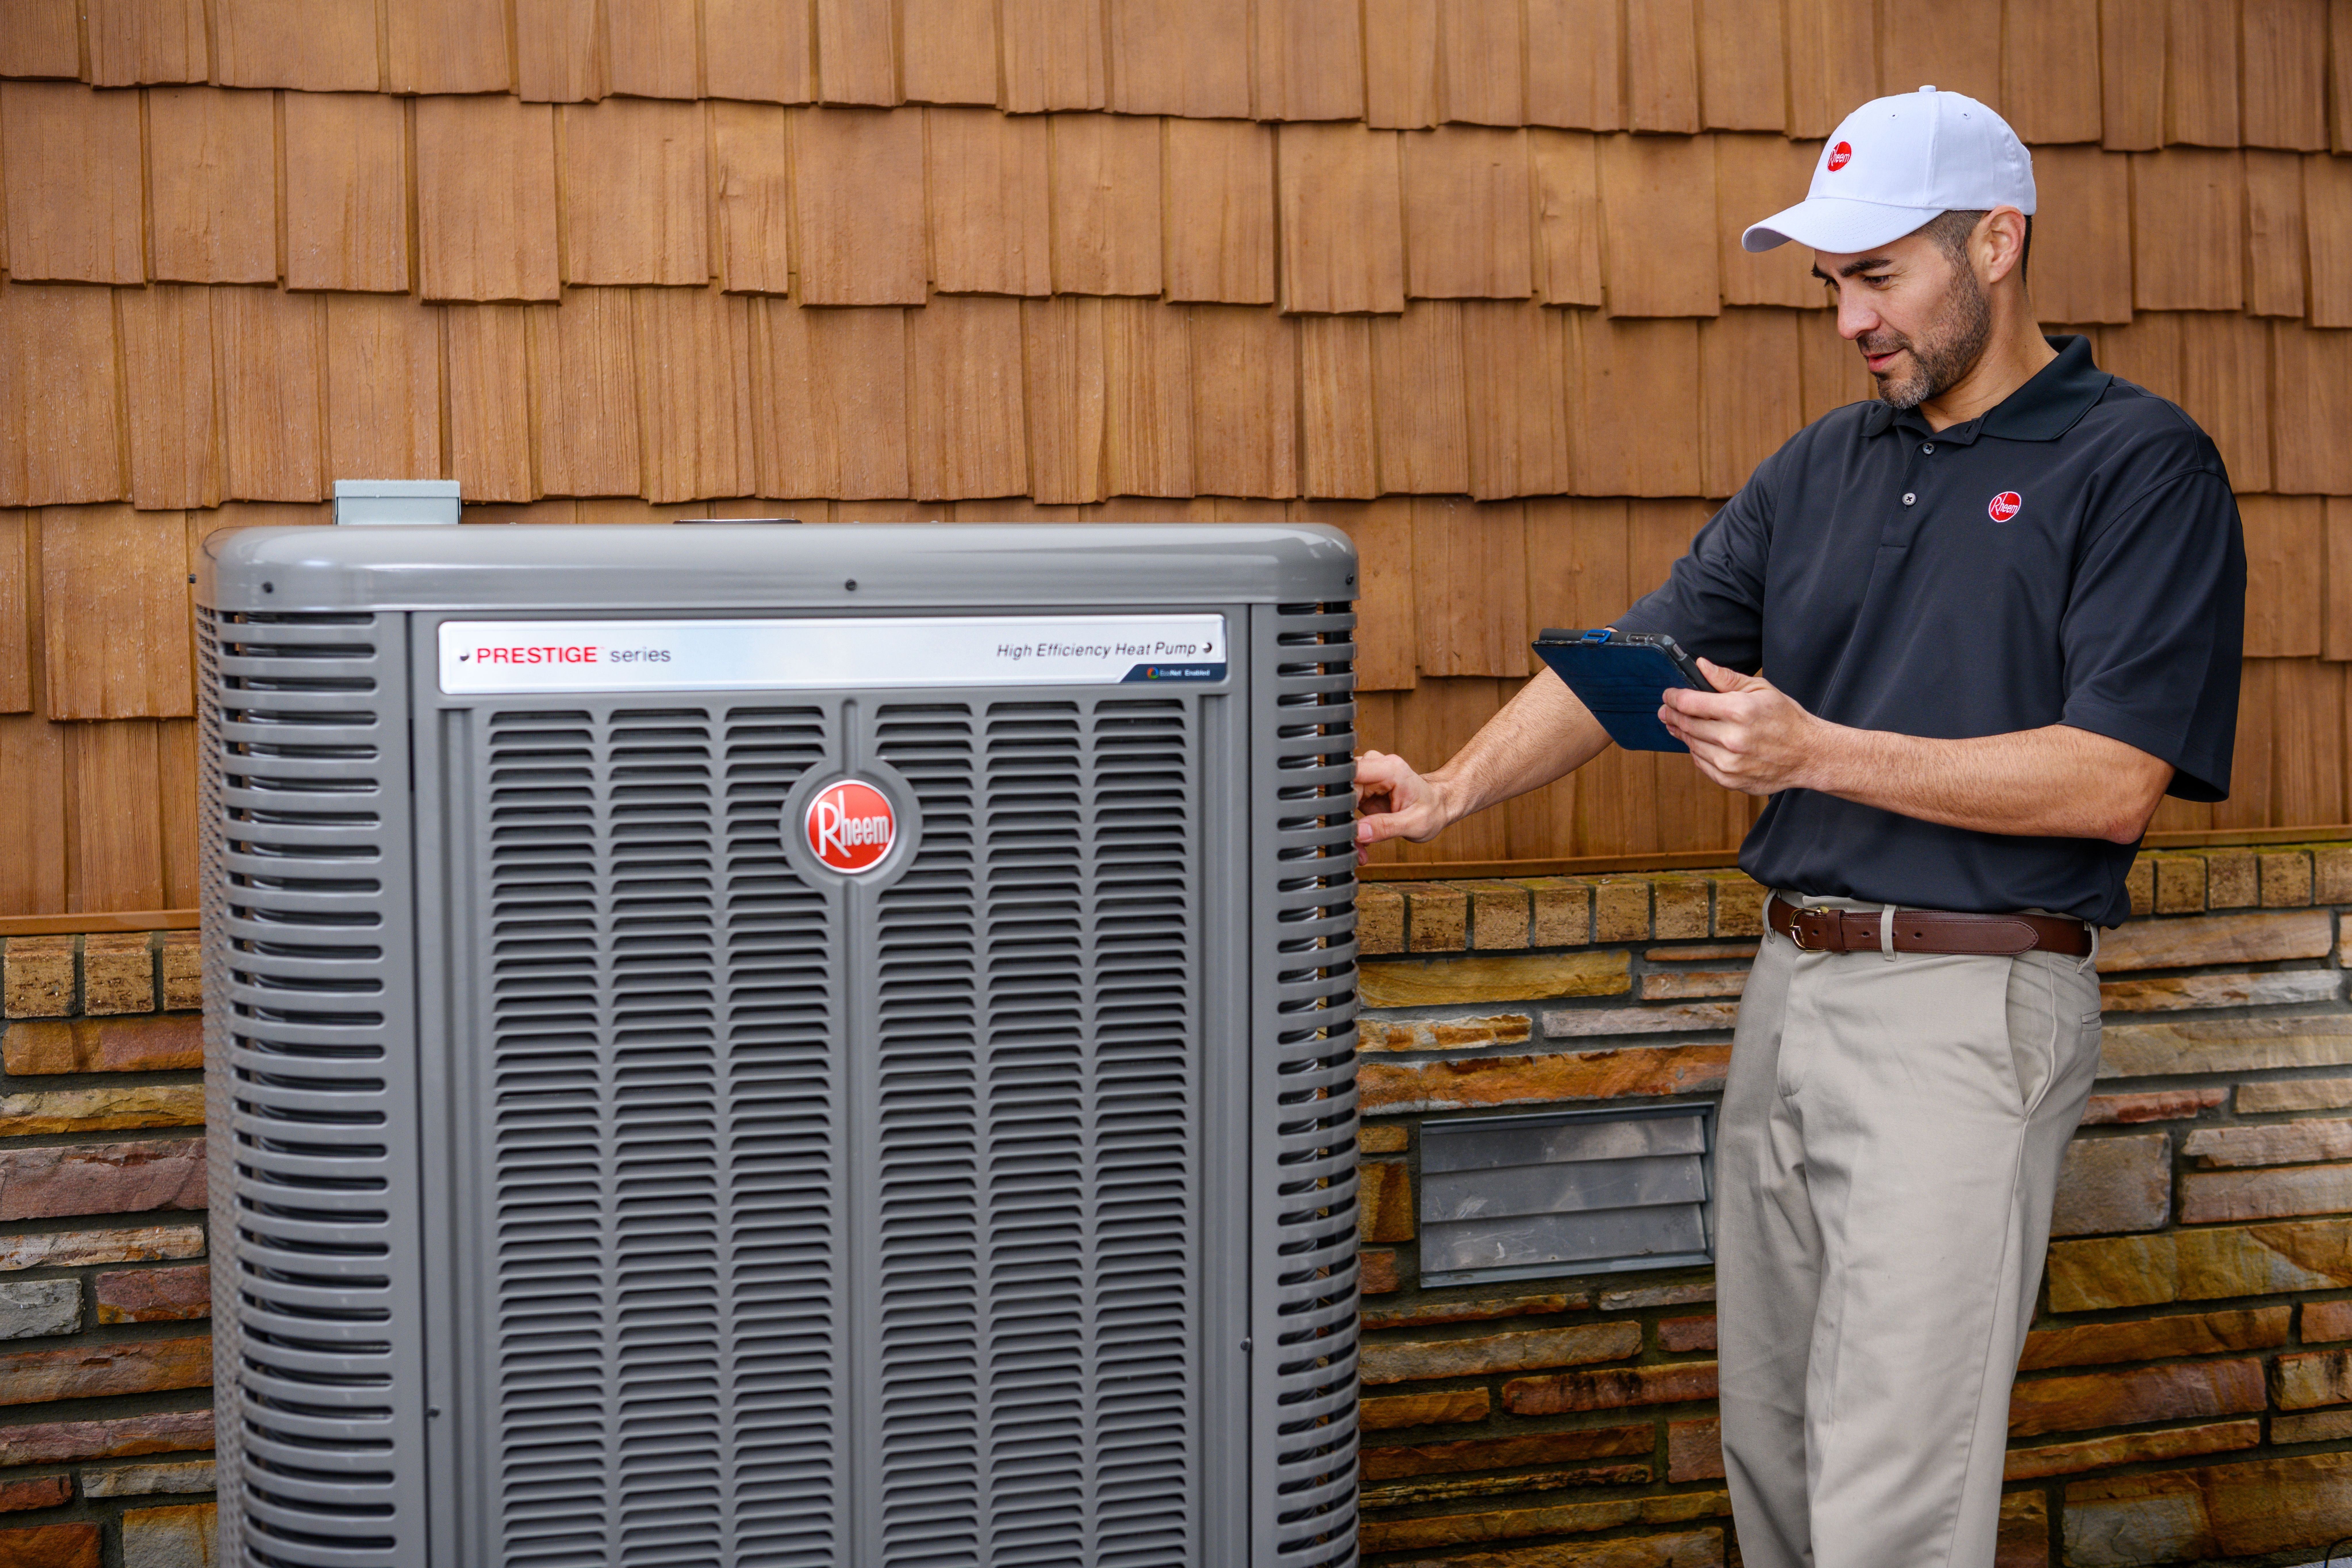 Reel-Strong Heating & Cooling Furnace Repair and Installation